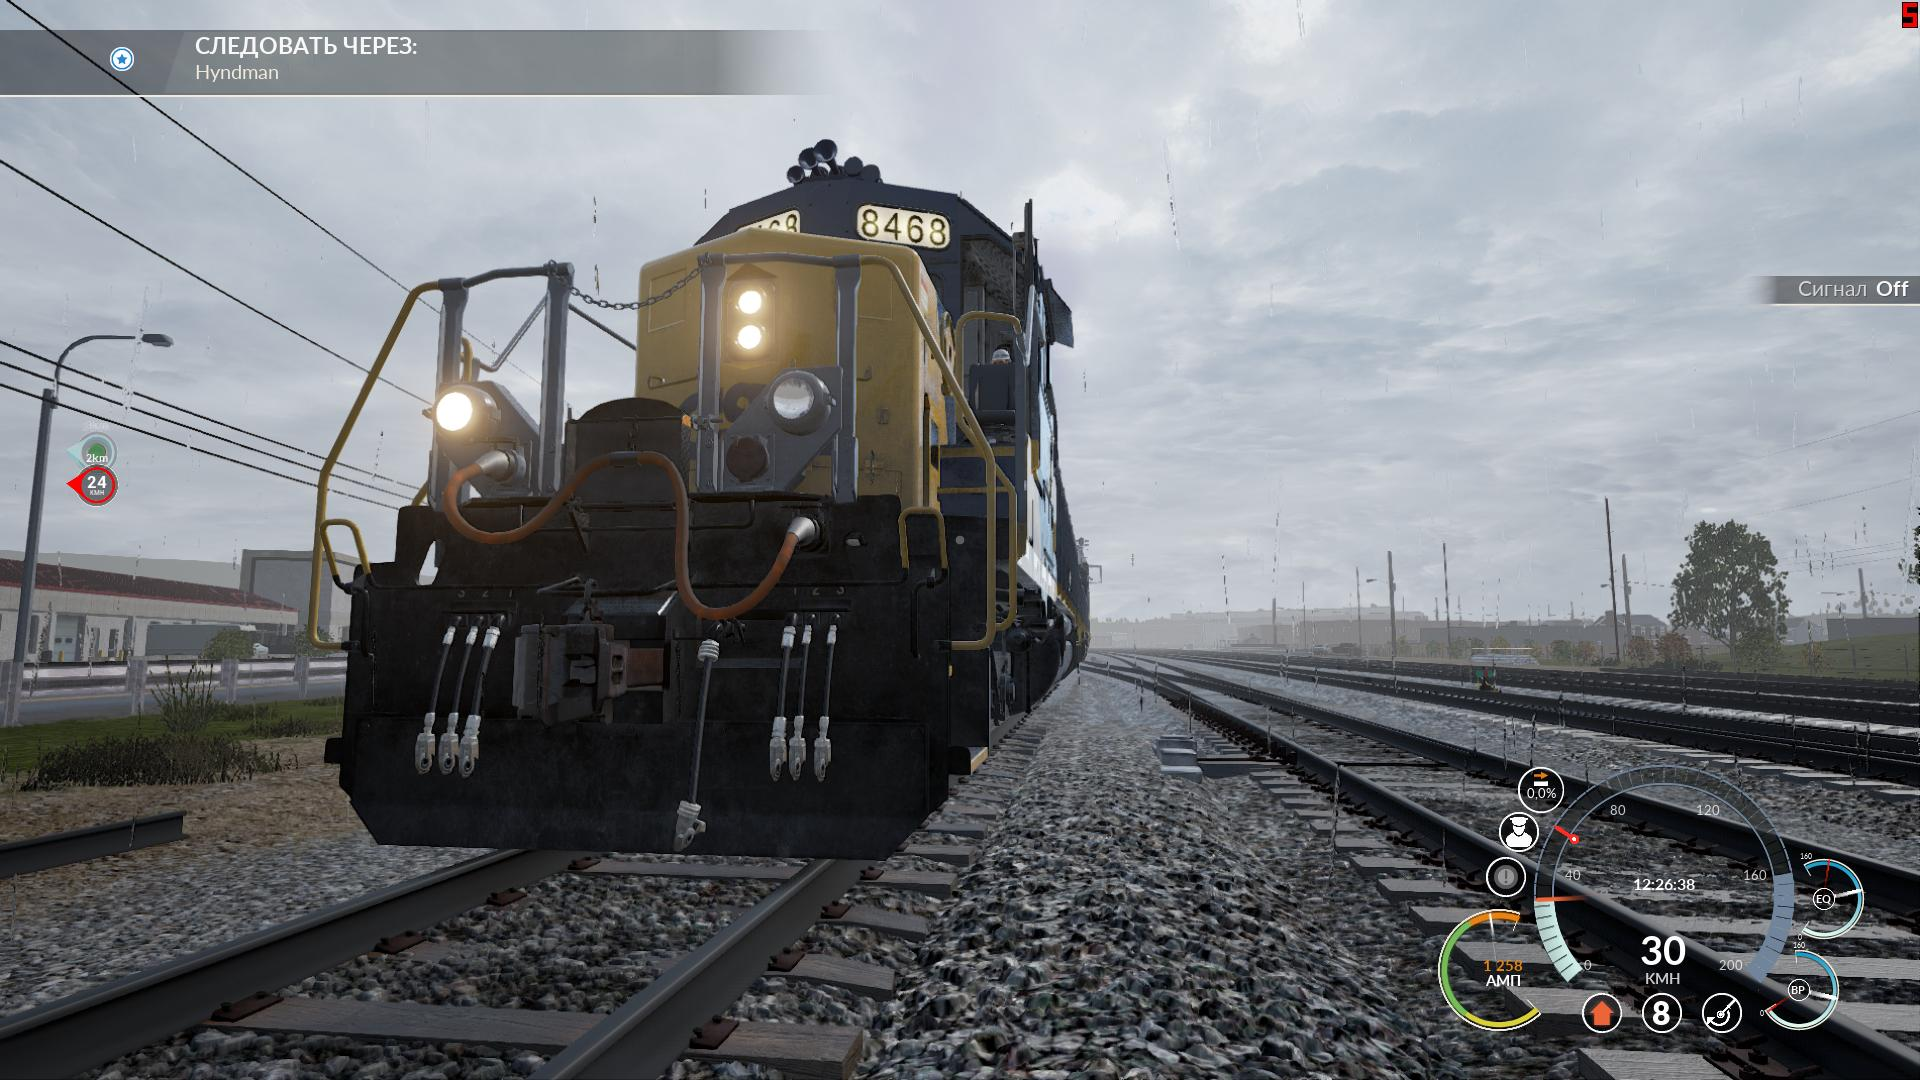 http://screenshot.ru/upload/images/2018/04/13/TS2Prototype-Win64-Shipping2018-04-1314-58-32-088e97a.jpg